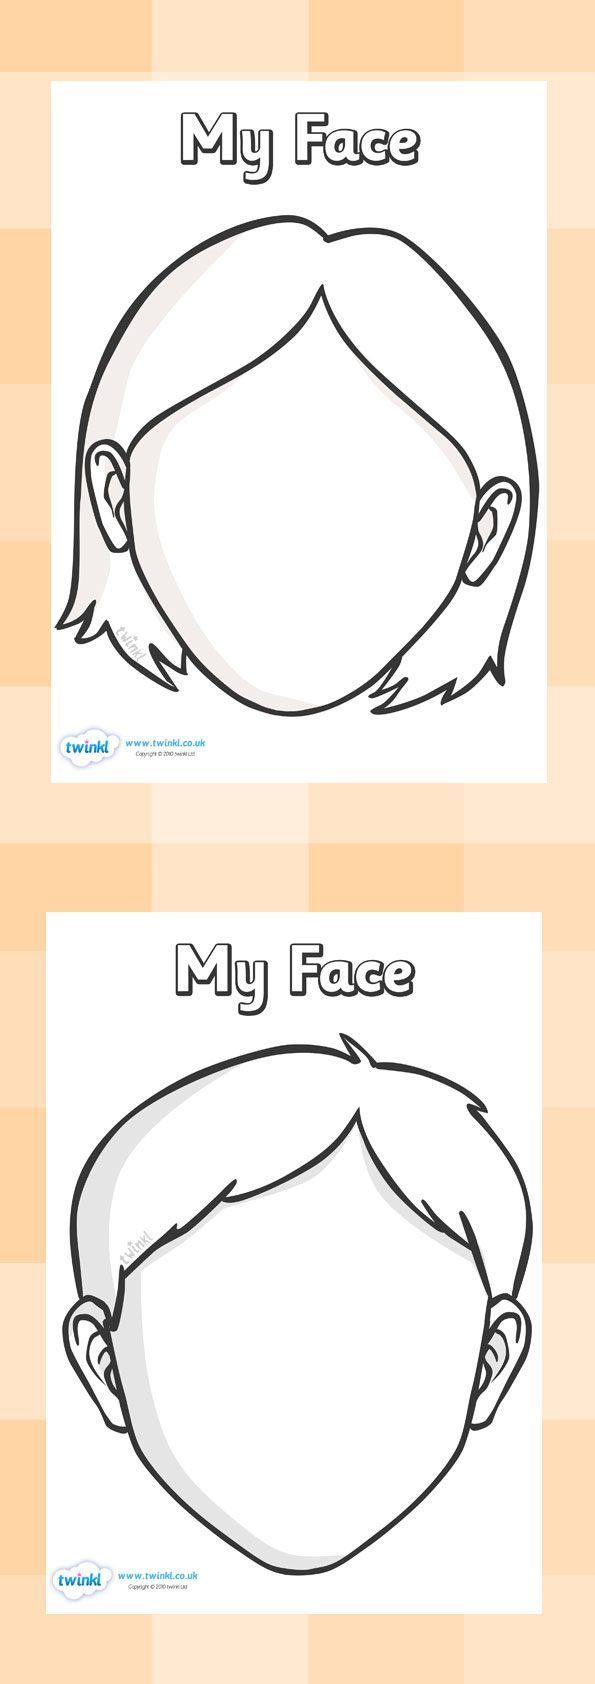 Blank Faces Templates. Free Printables - Children can draw things that 'represent' them in the faces.                                                                                                                                                                                 More